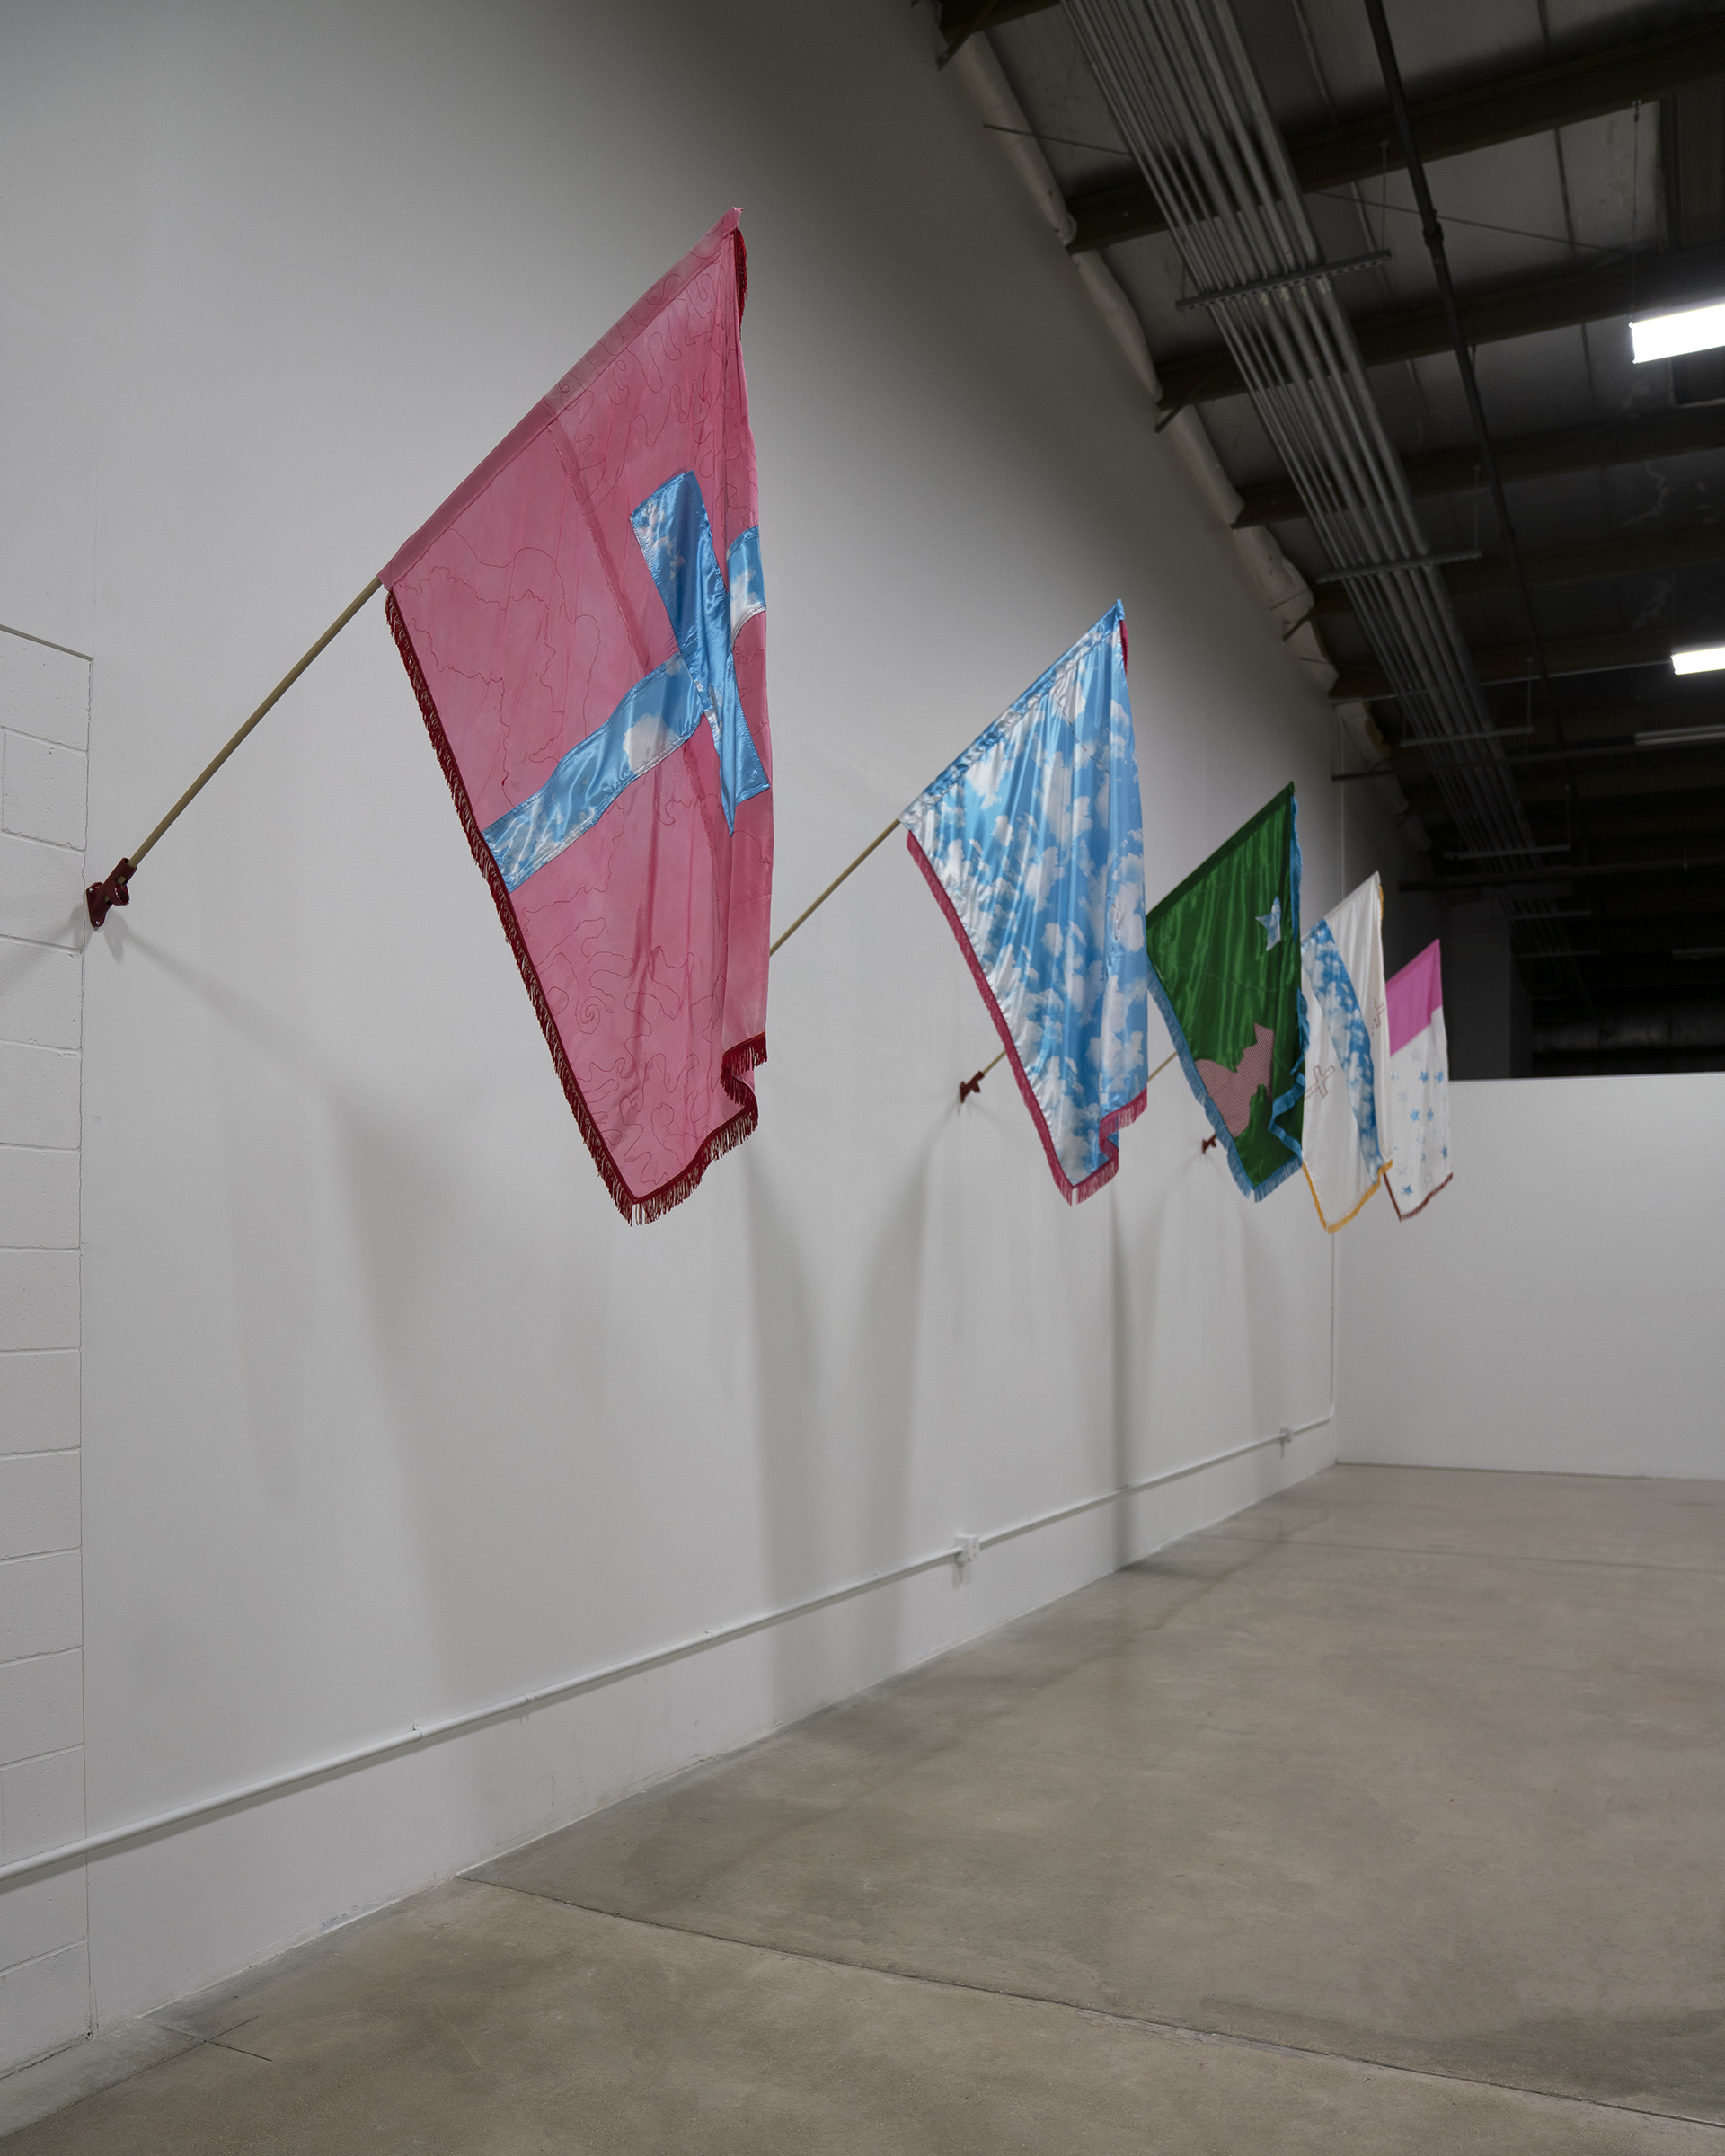 Installation view of For No Man's Land by Eva Gabriella Flynn at the Art Lofts Gallery, University of Wisconsin-Madison.